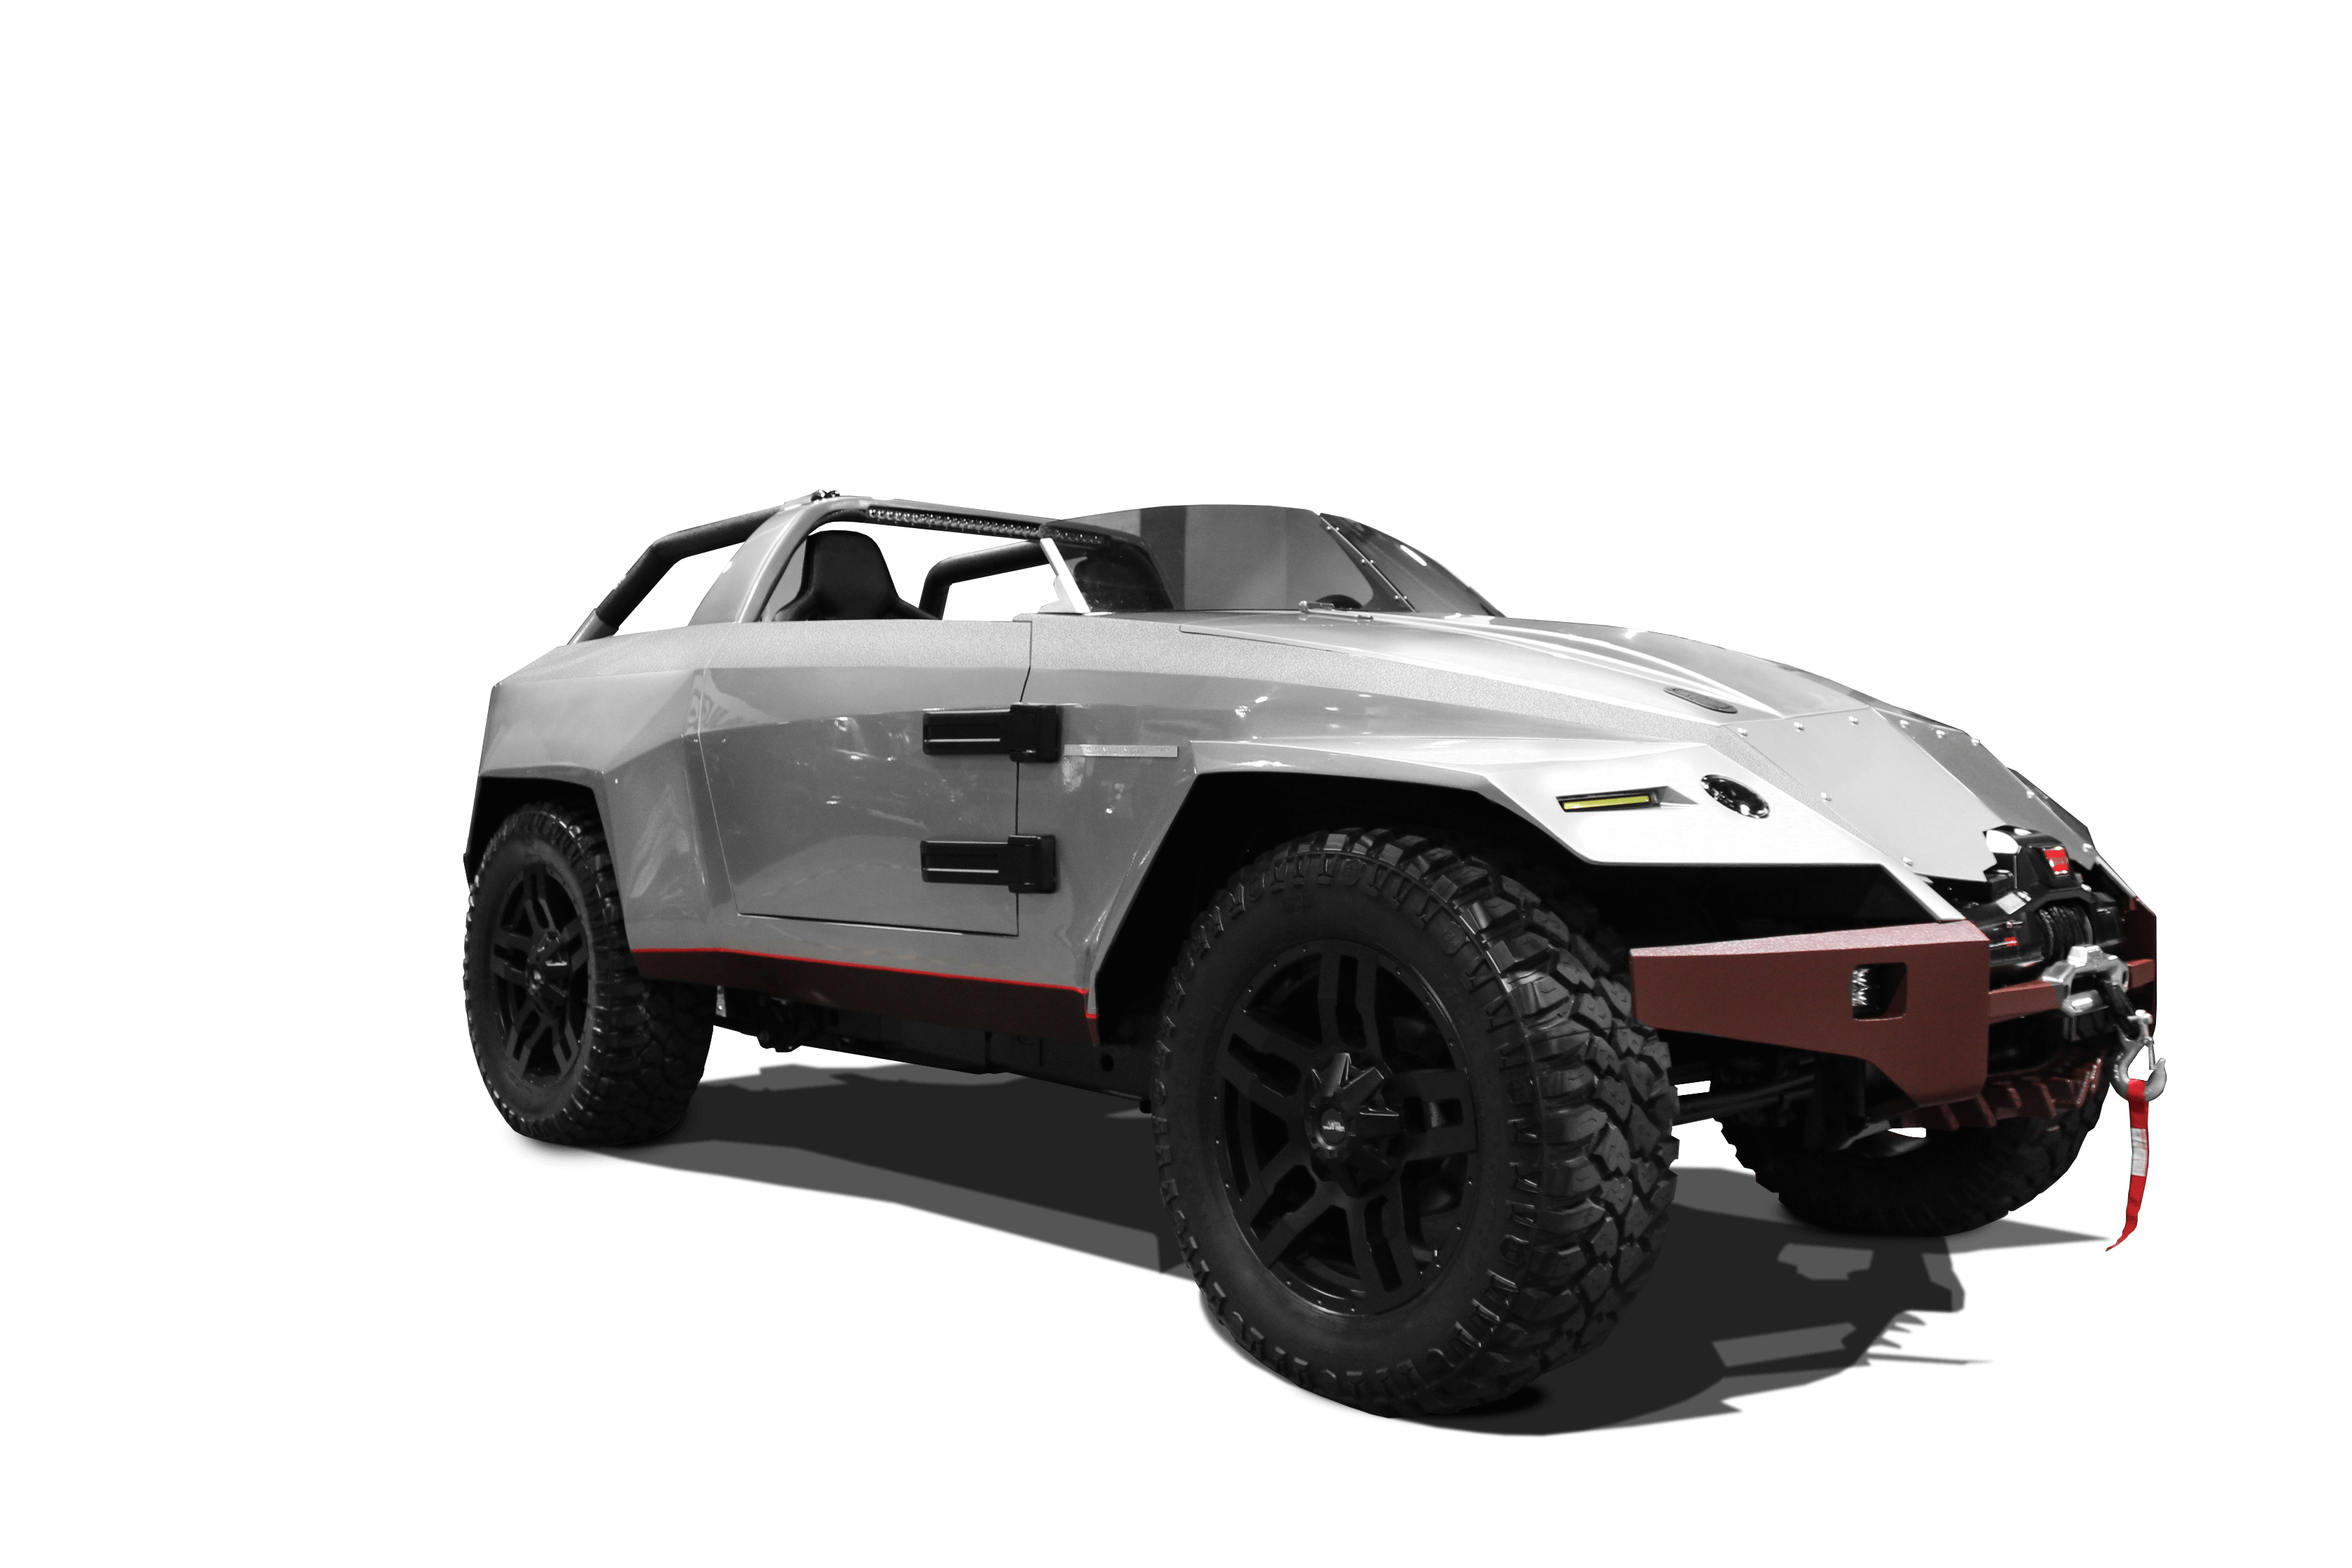 Sema15 Concept Car Cut Out Stripe Added